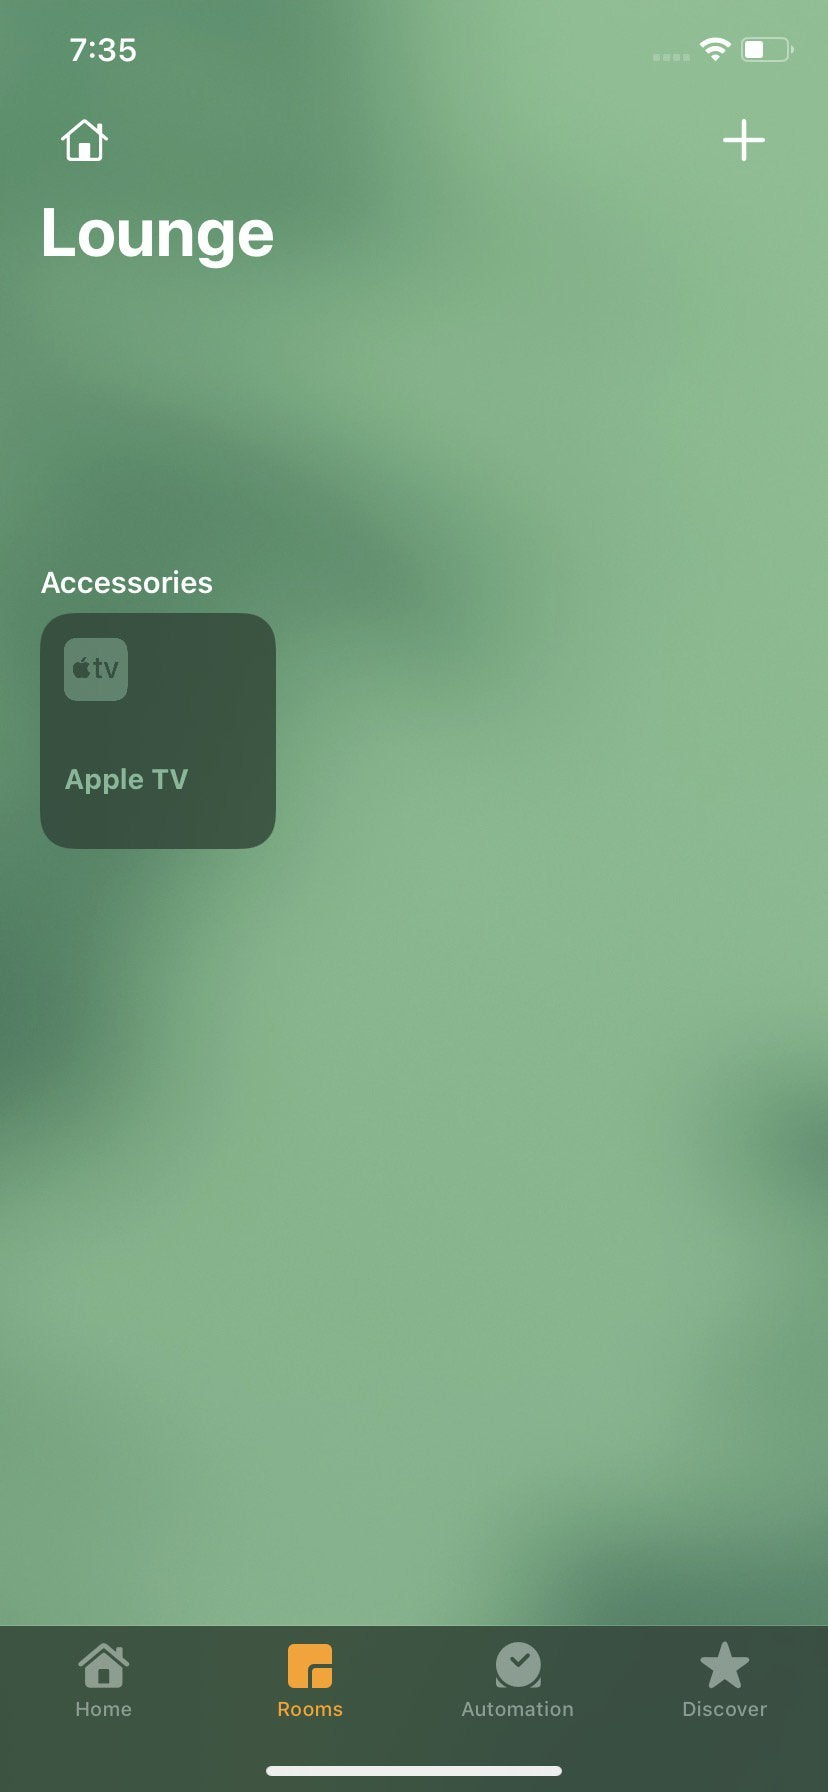 New HomeKit user interface Discover section at the bottom. Views